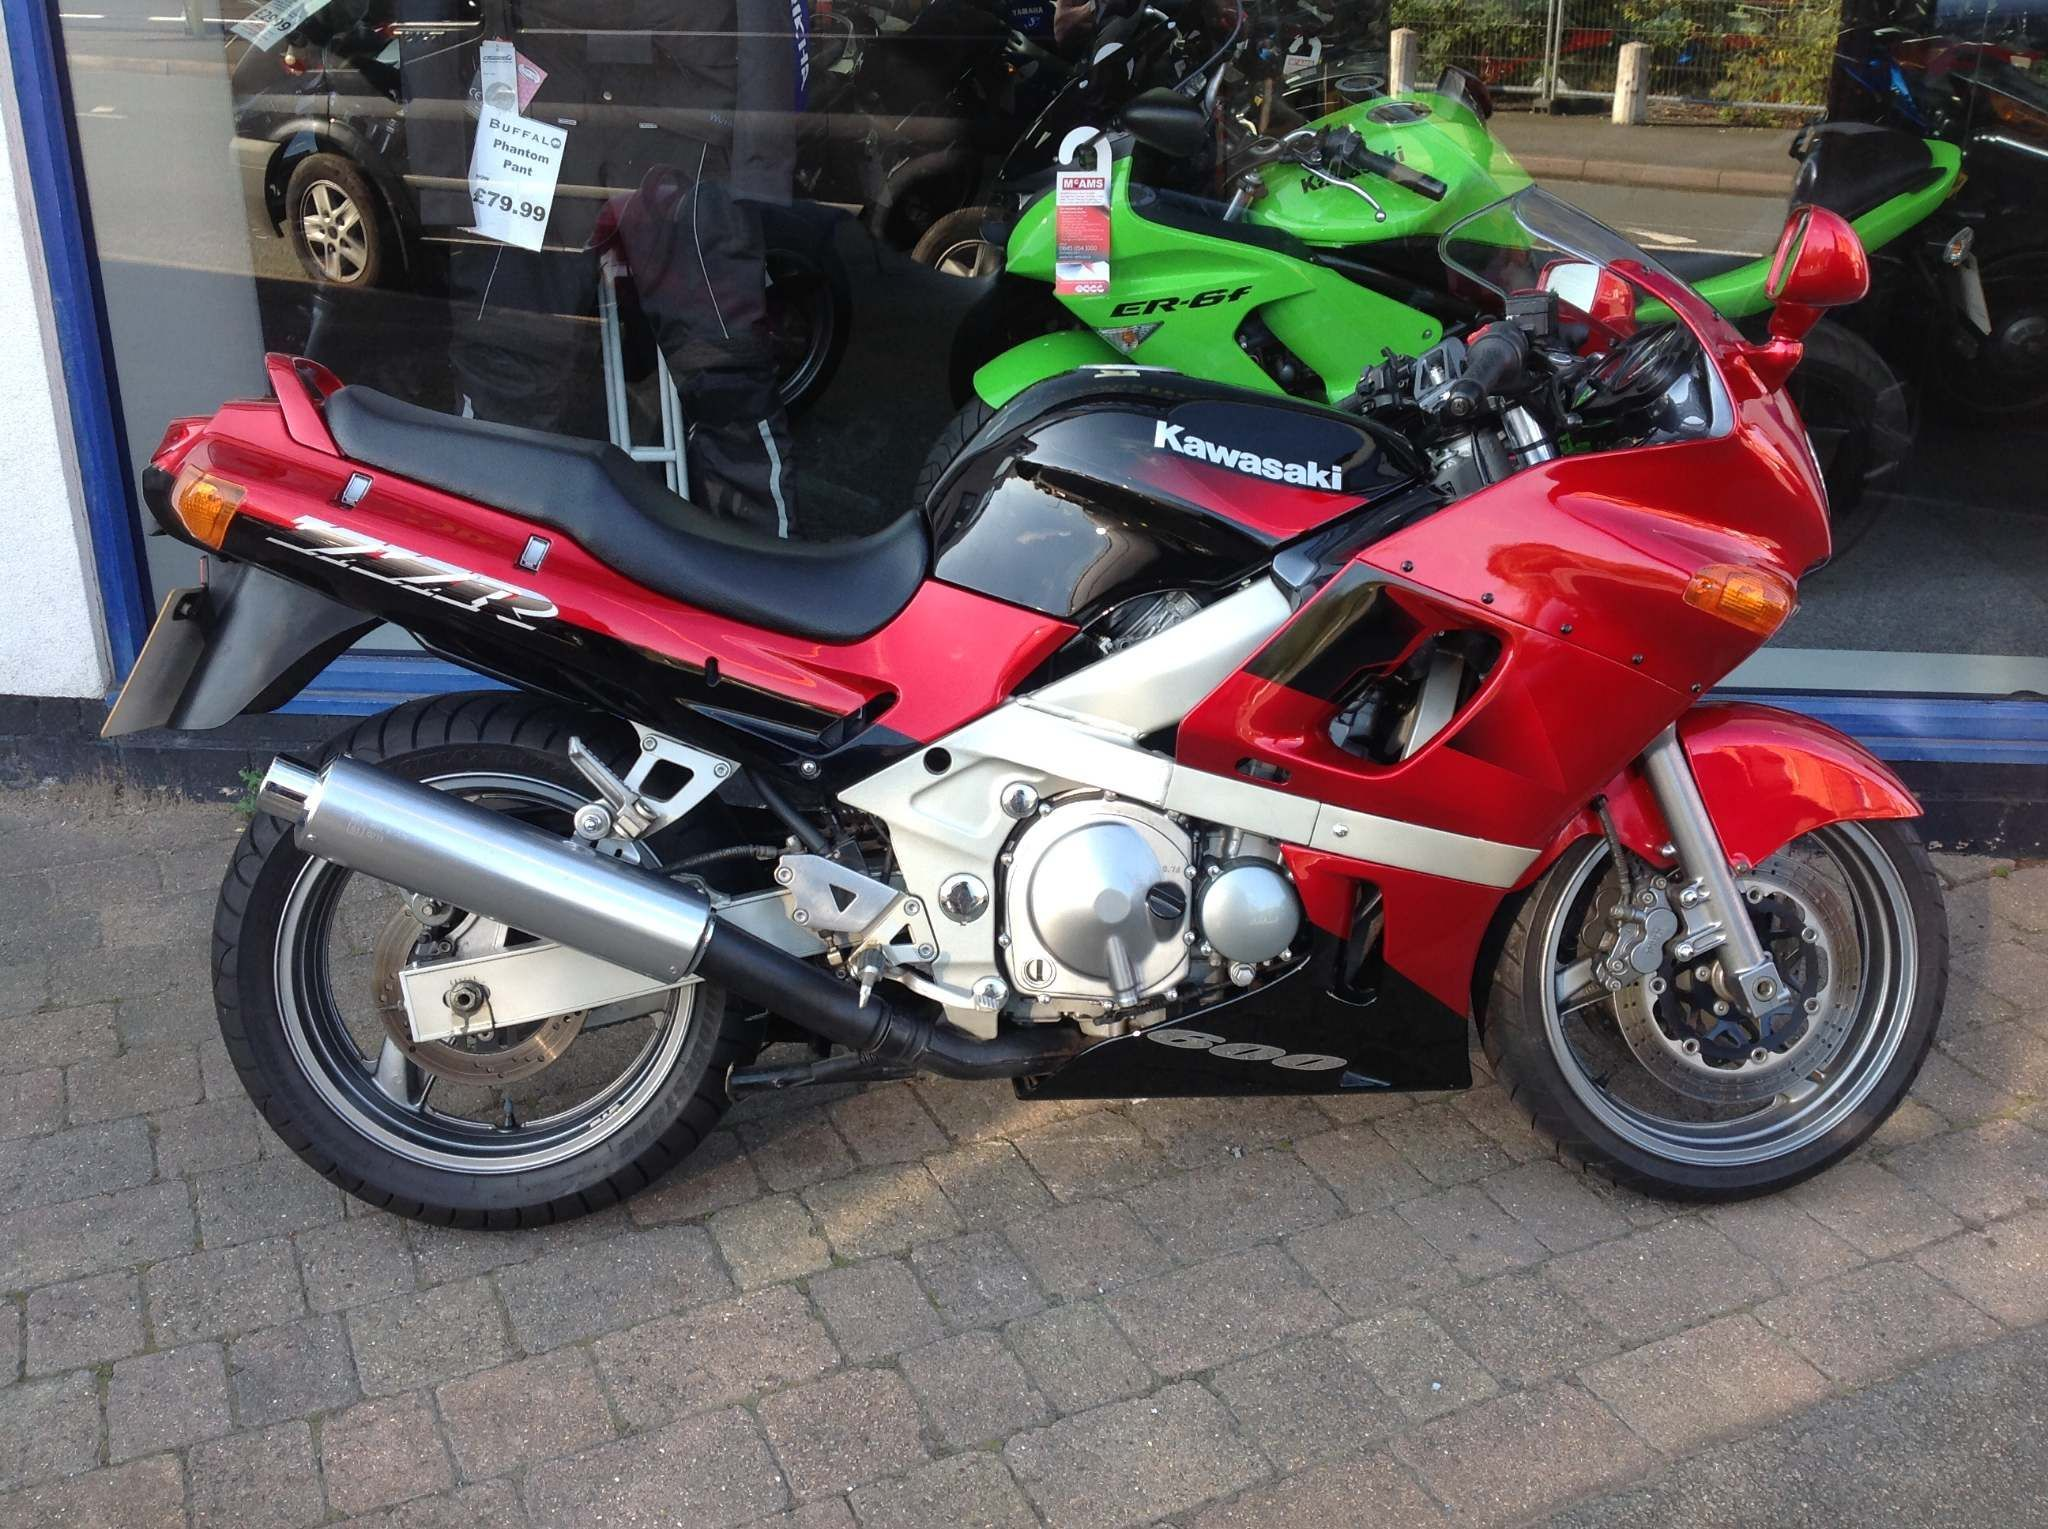 Kawasaki ZZR600 600 (ZZR) Petrol Manual (98 bhp) - The